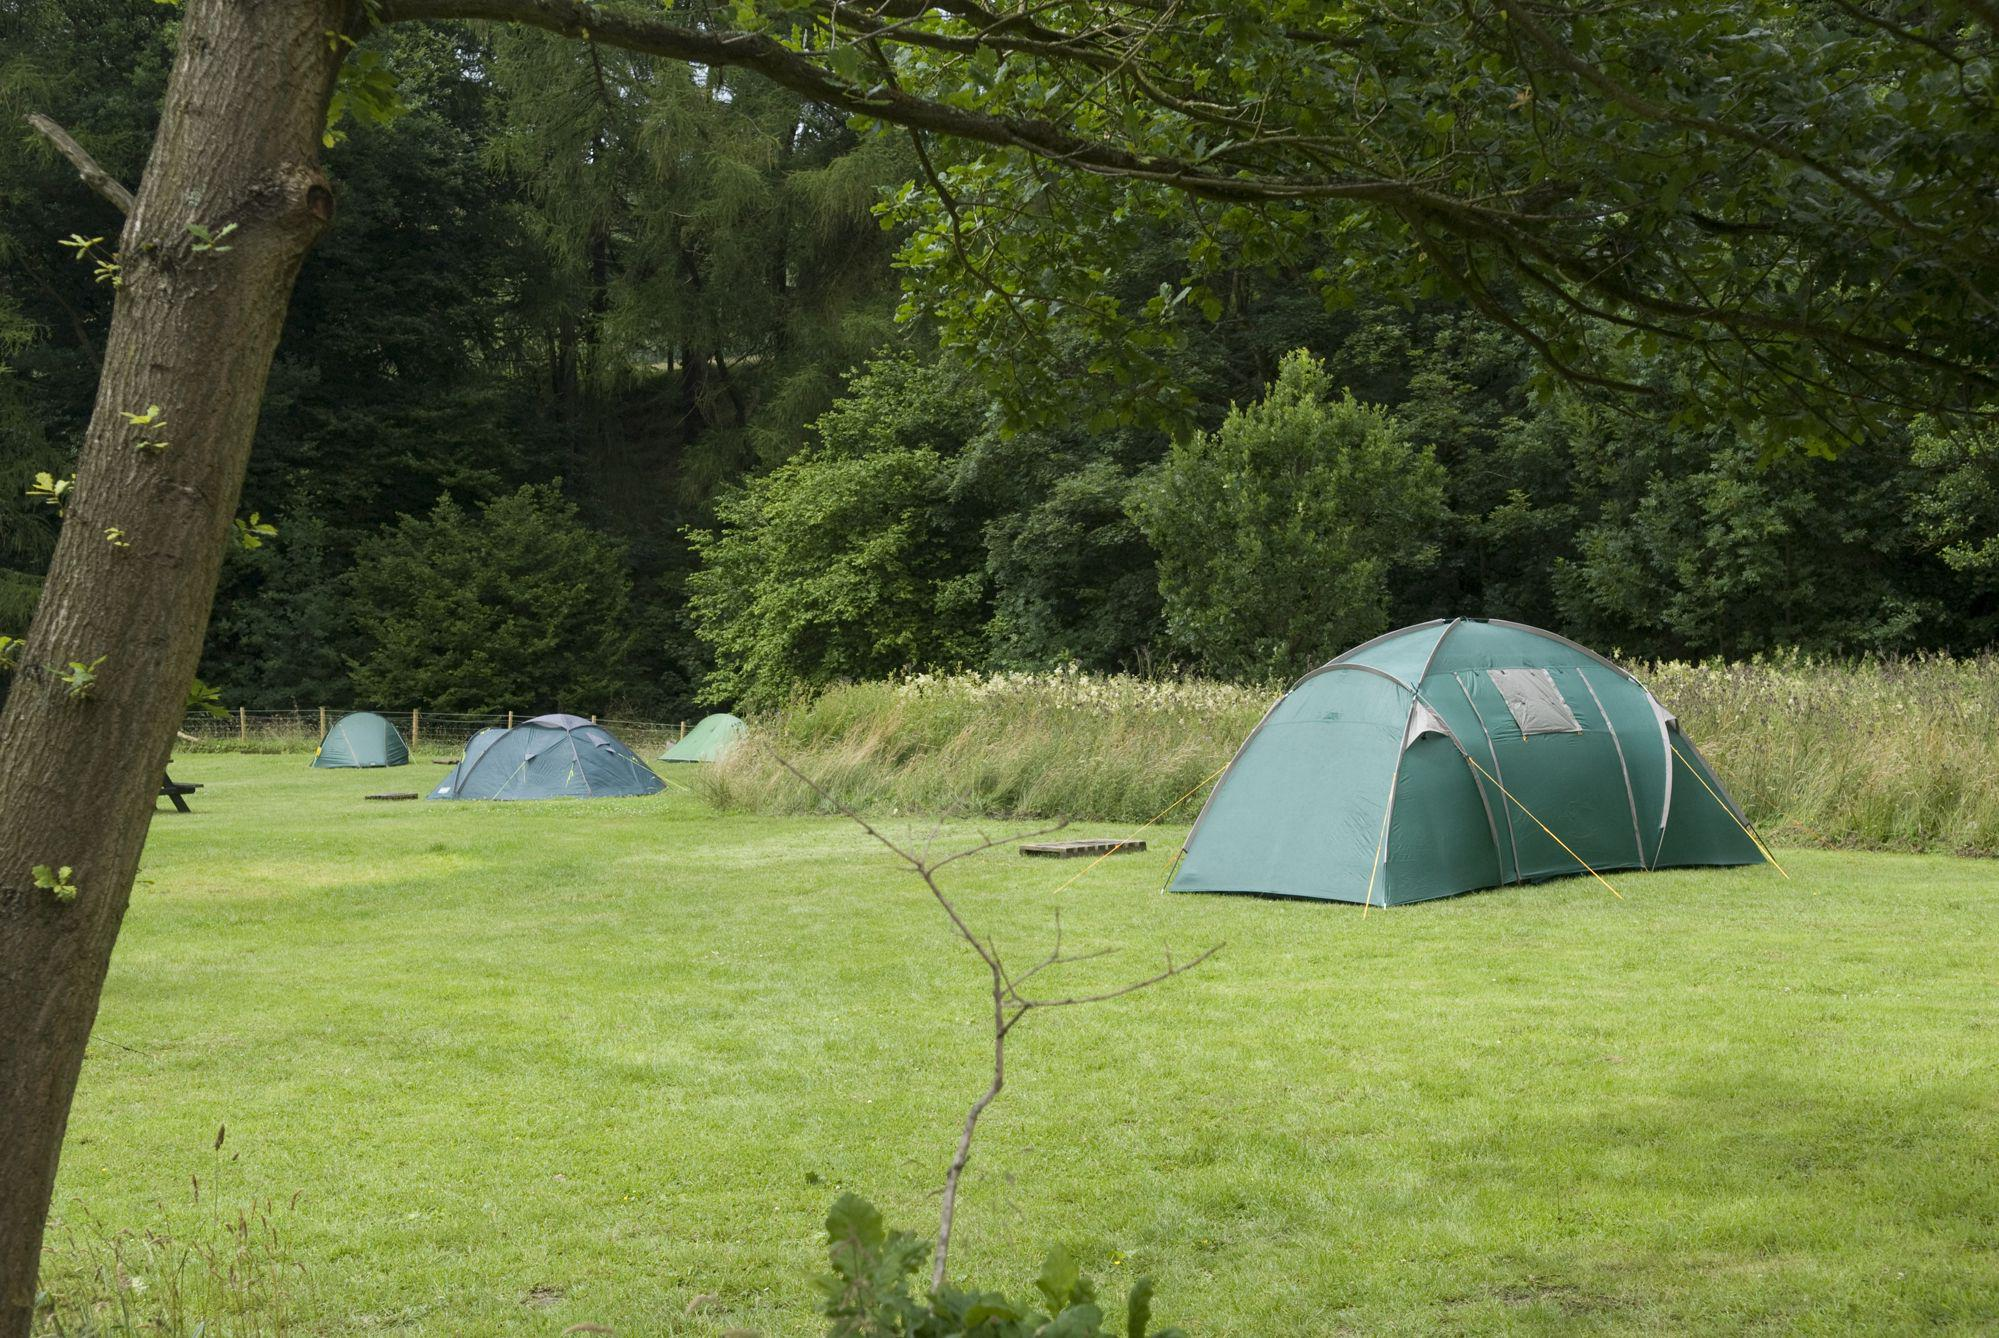 North Lees Campsite in the Peak District